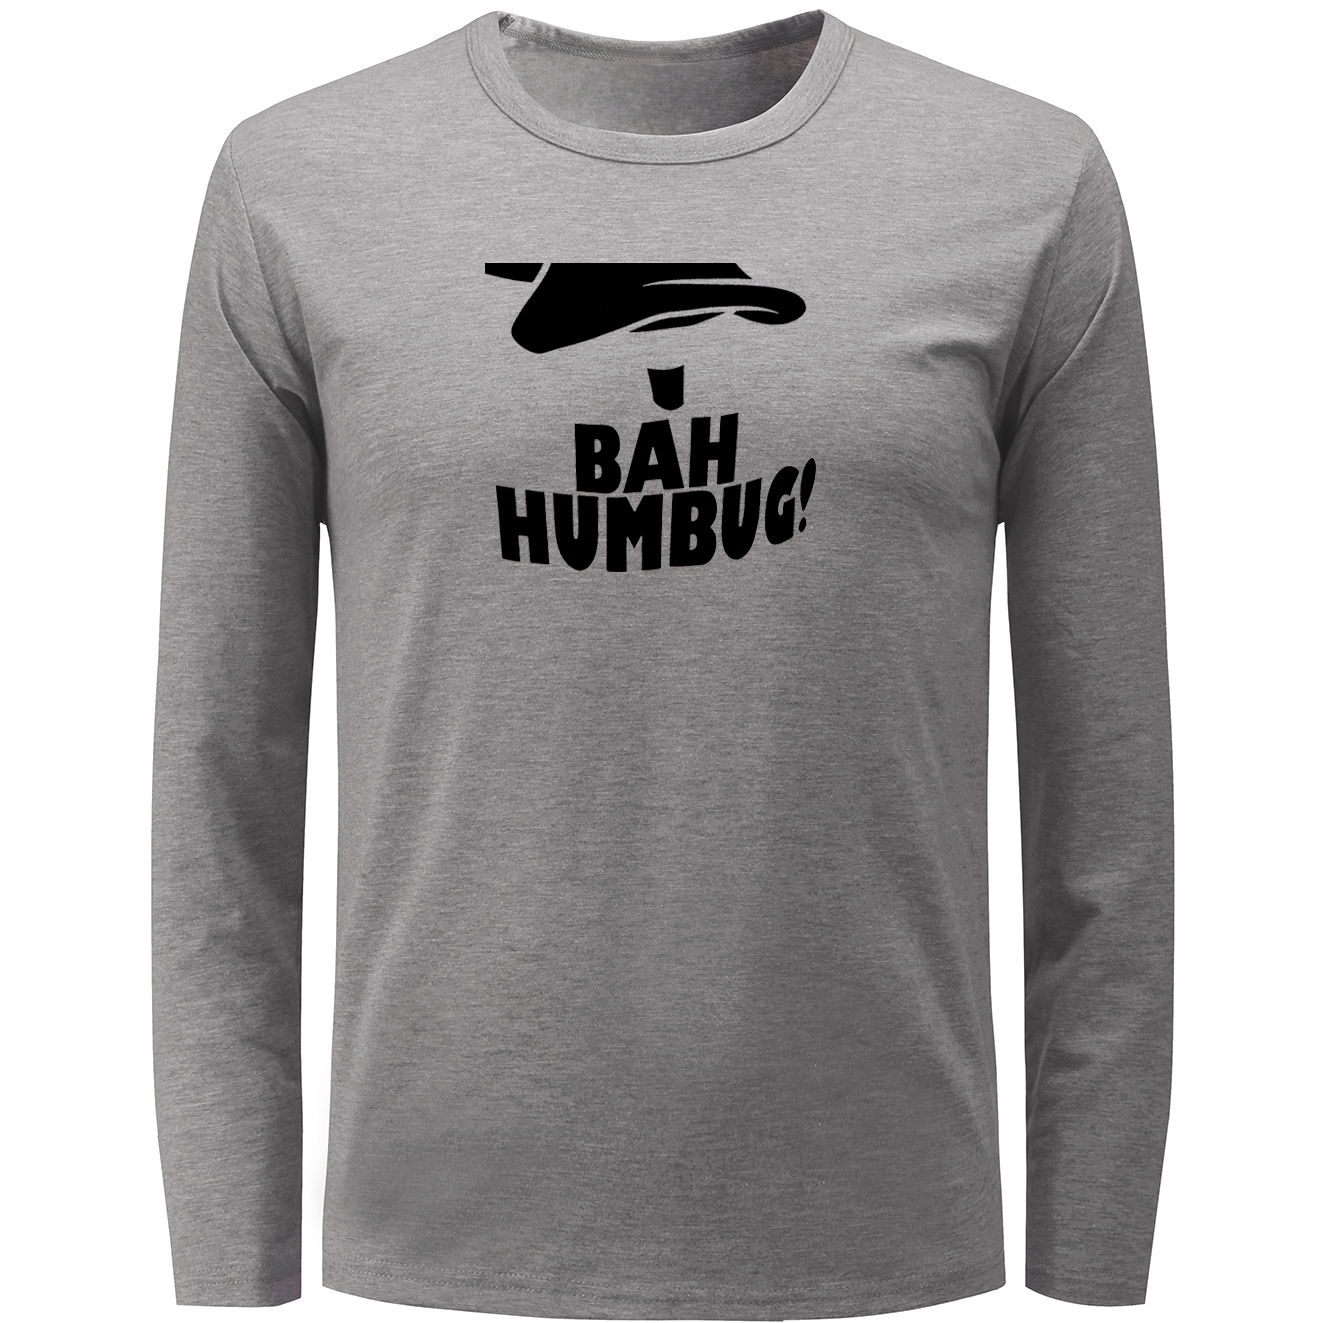 IDzn BAH HUMBUG Letter Graphic Long Sleeve T Shirt Men Boy Spring Autumn Cotton Fitness Unisex T-shirt Crew Neck Tee Clothing